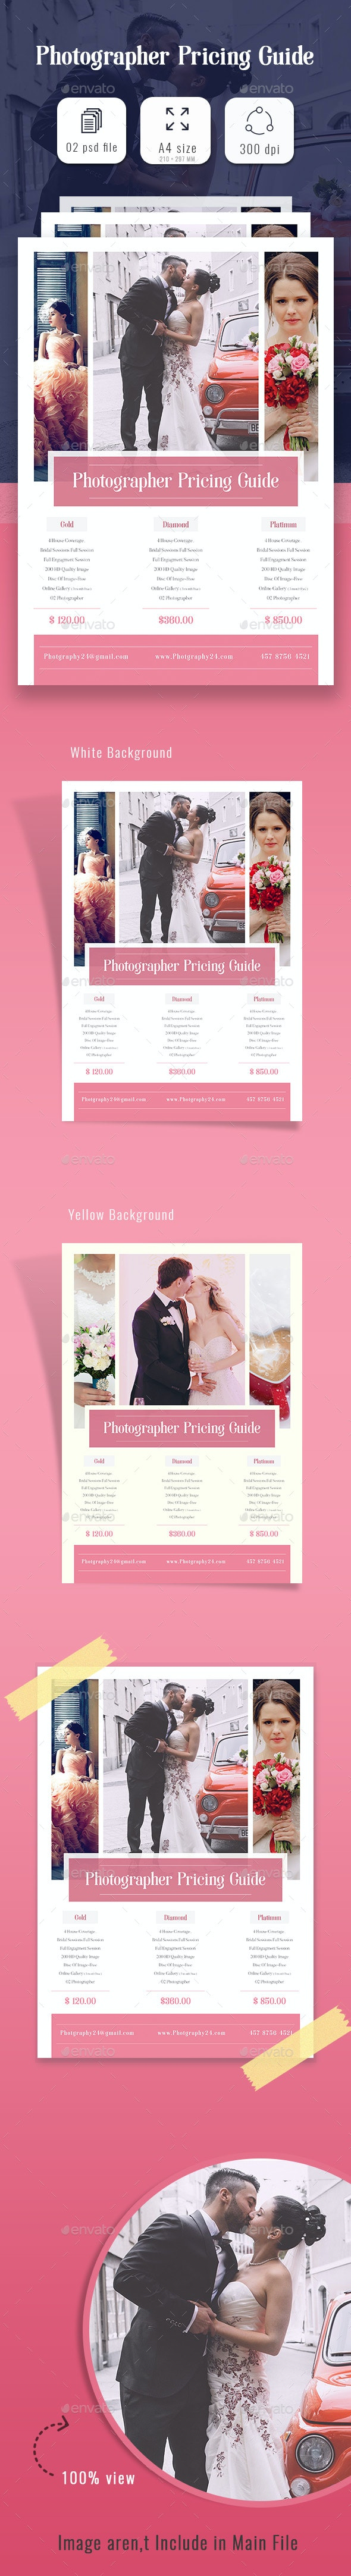 Photographer Price Guide - Flyers Print Templates